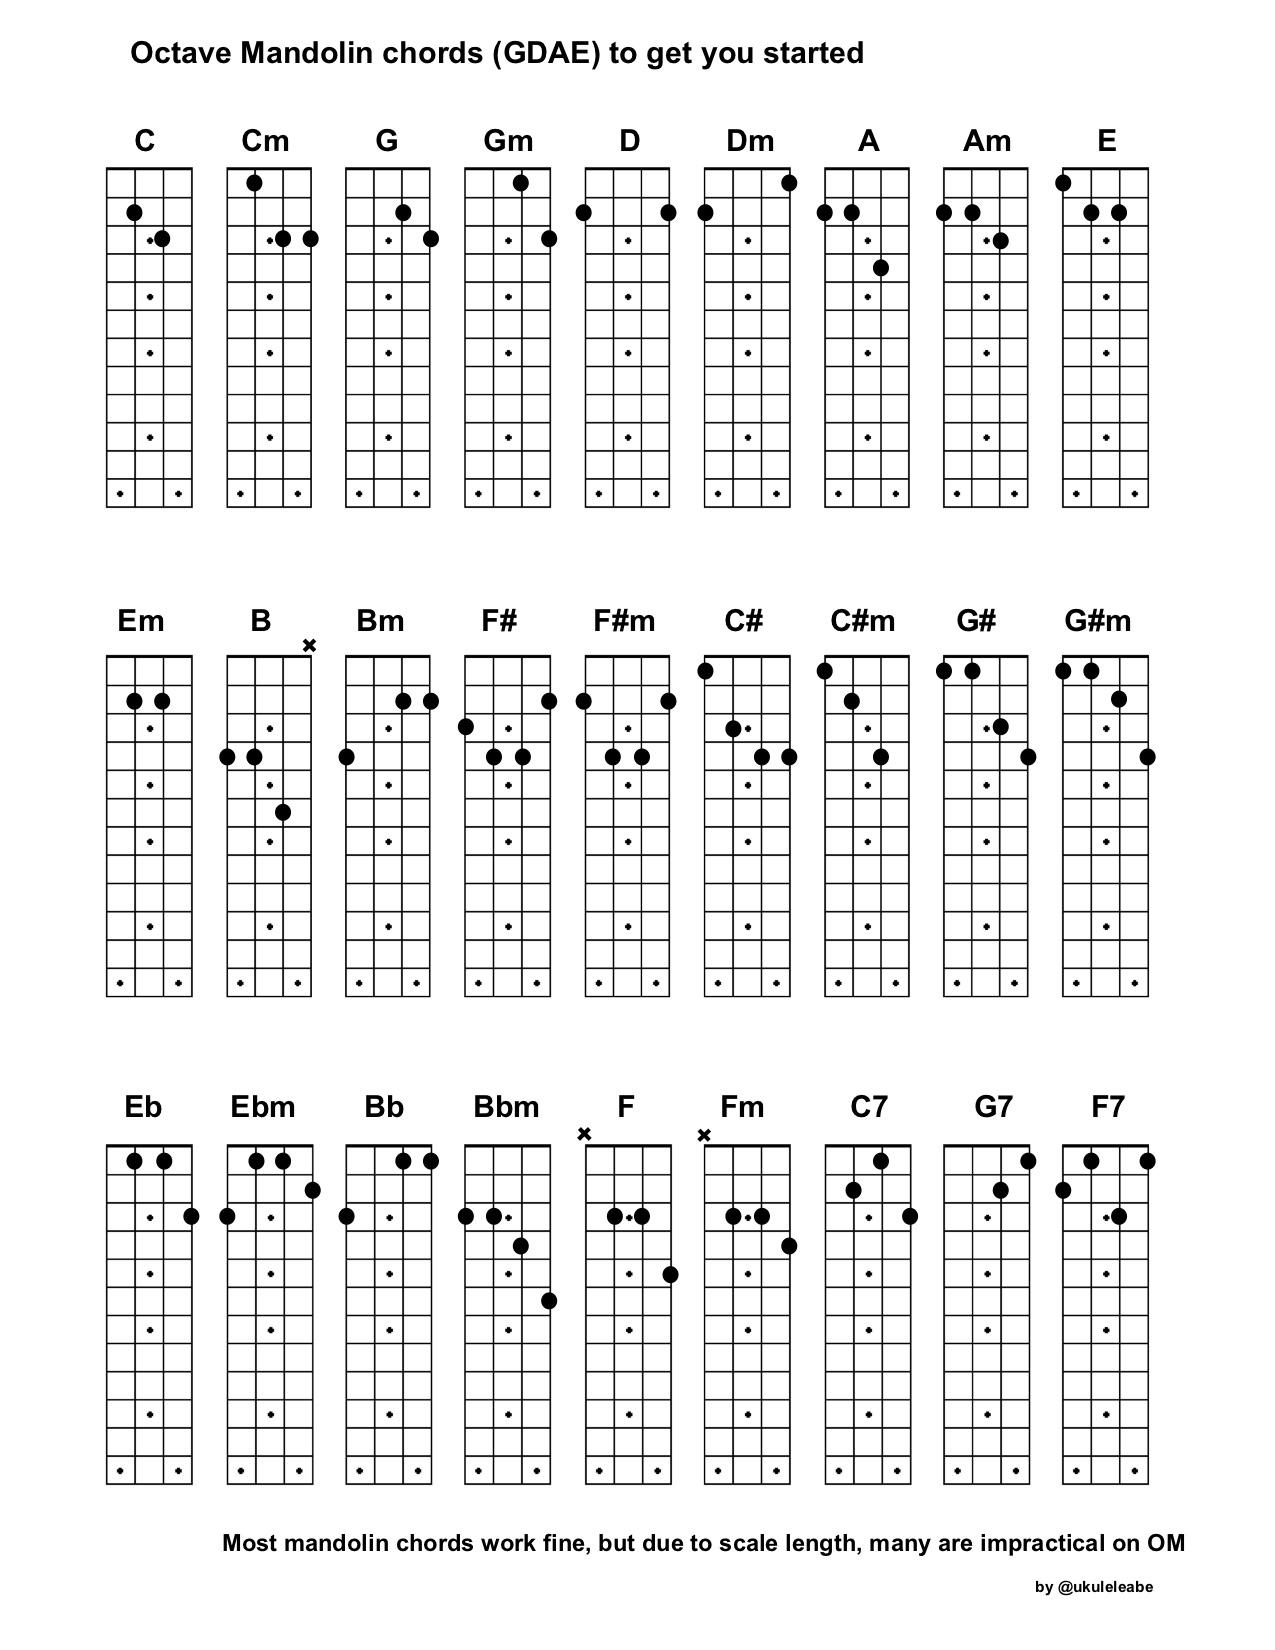 Mandolin Chord Chart I Made A Chord Chart For Octave Mandolin To Have A Quick Reference